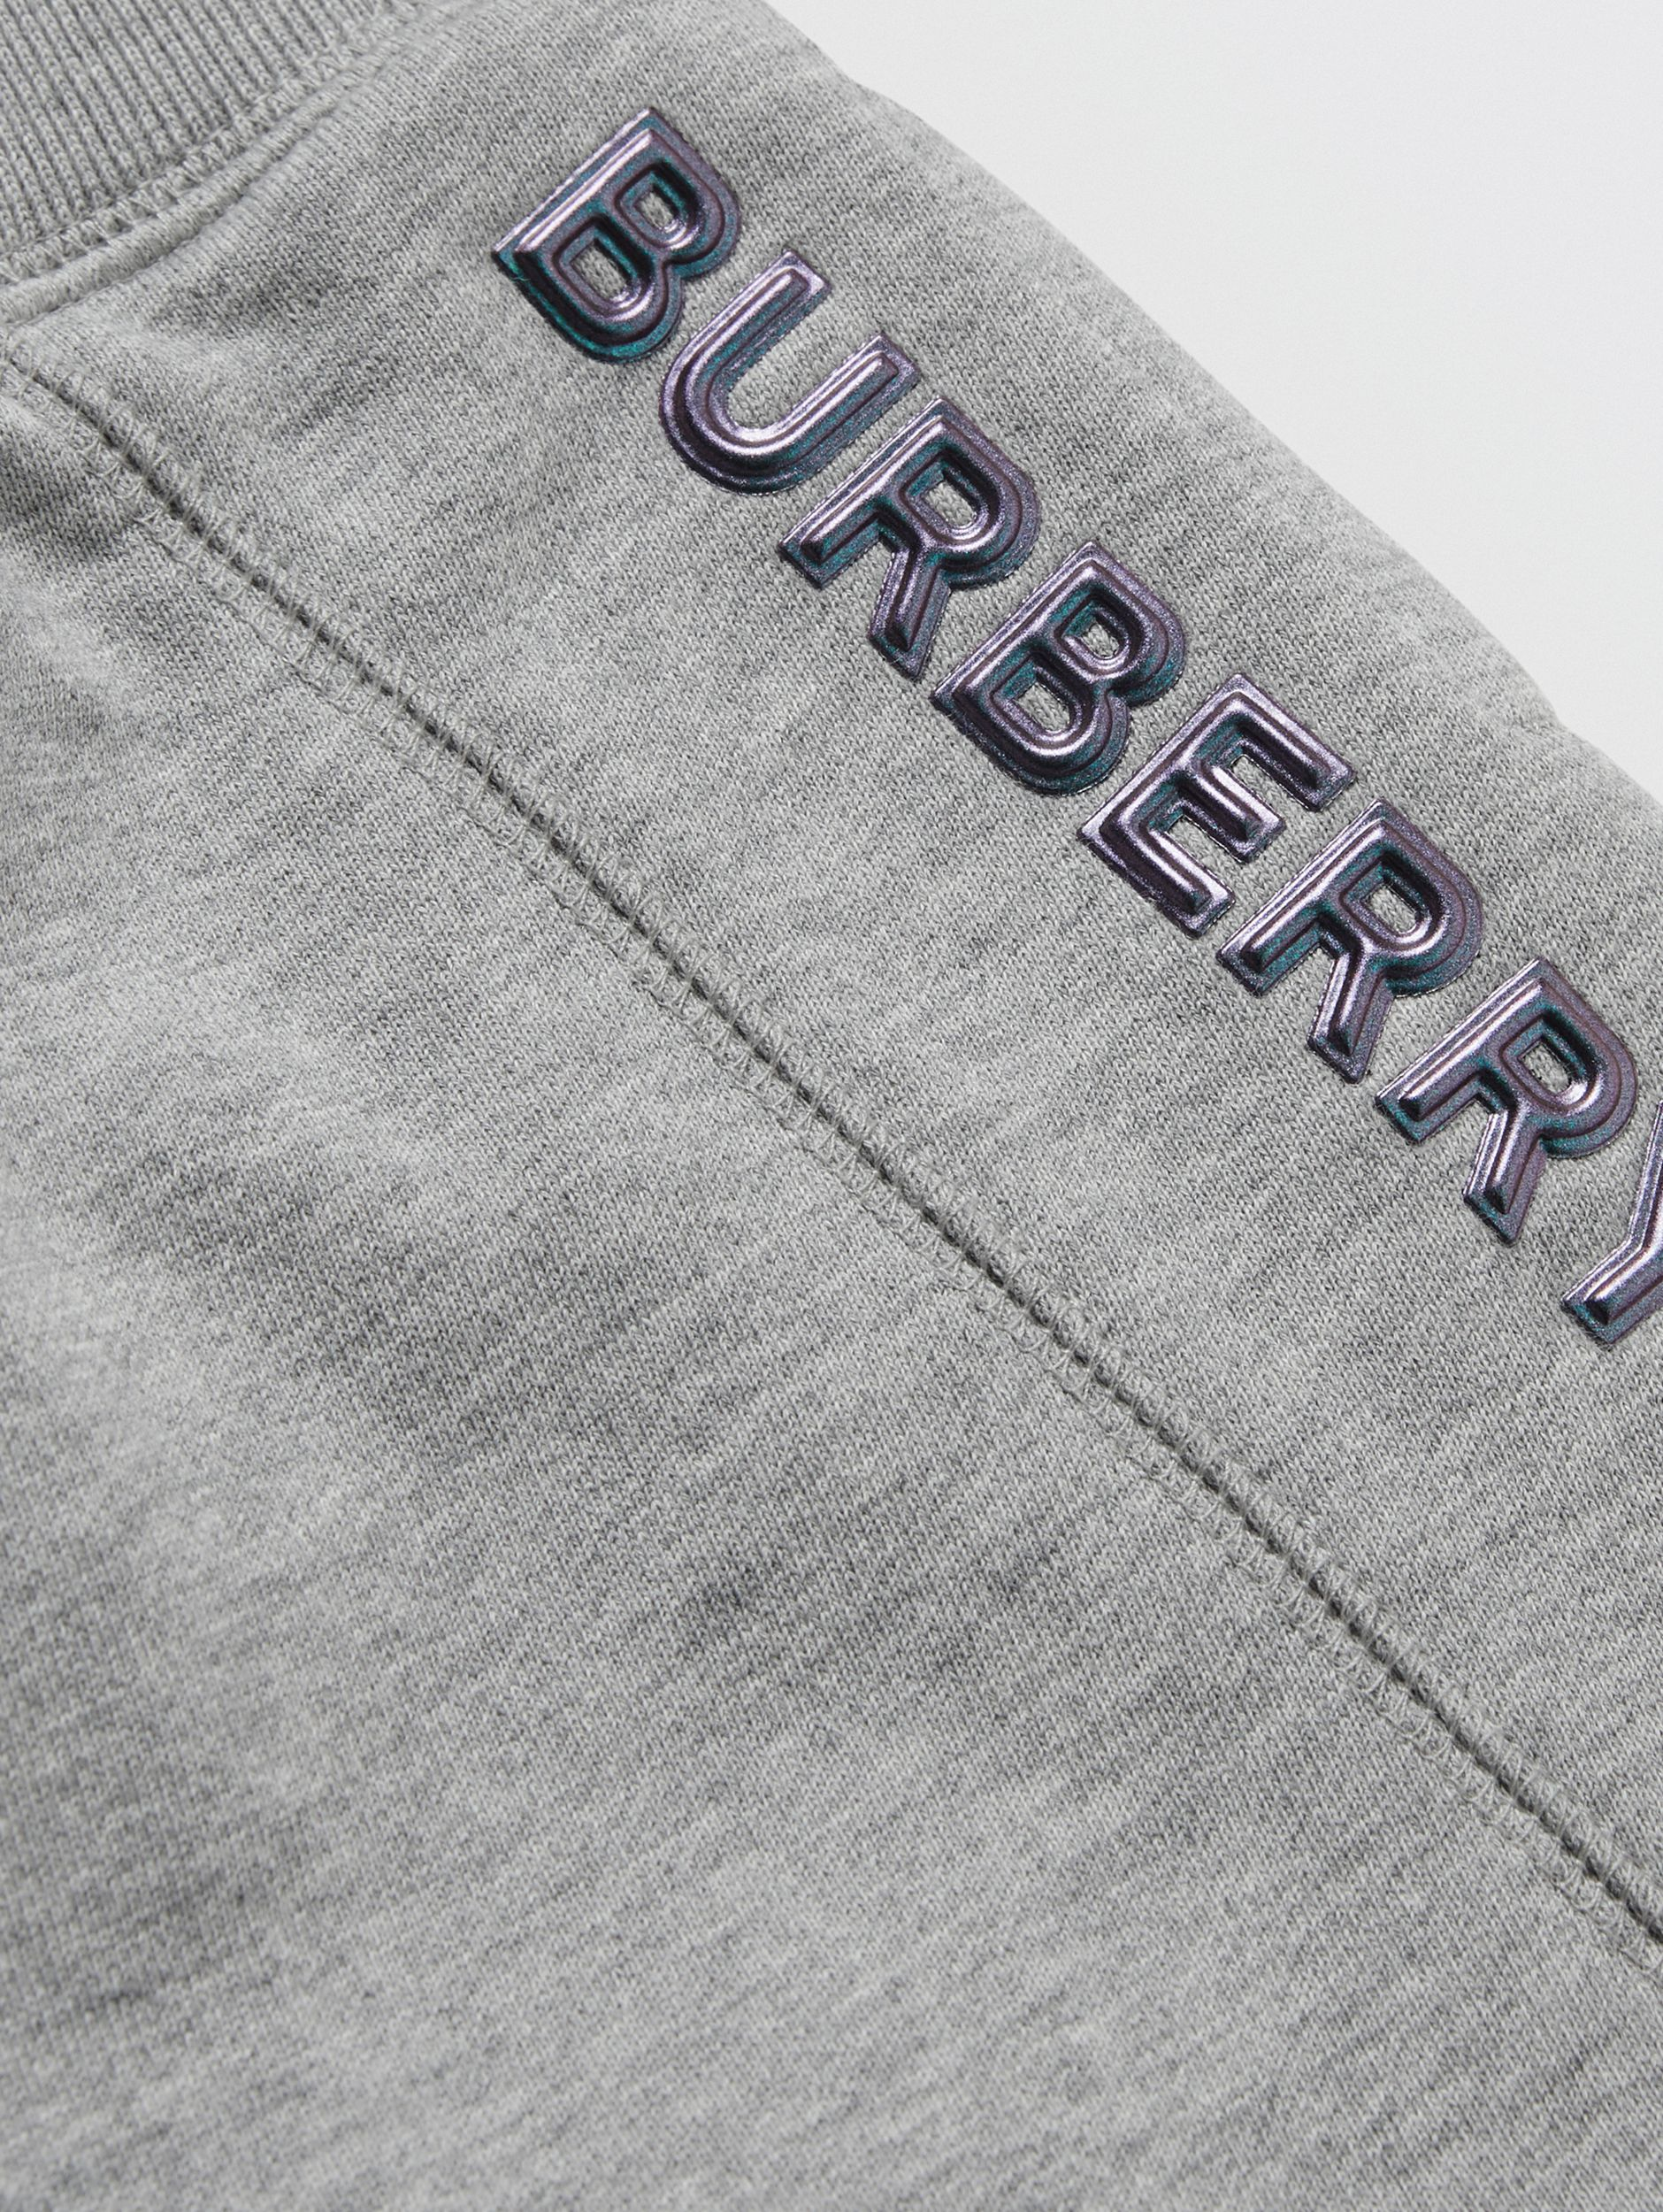 Logo Detail Cotton Drawcord Shorts in Grey Melange - Children | Burberry Canada - 2